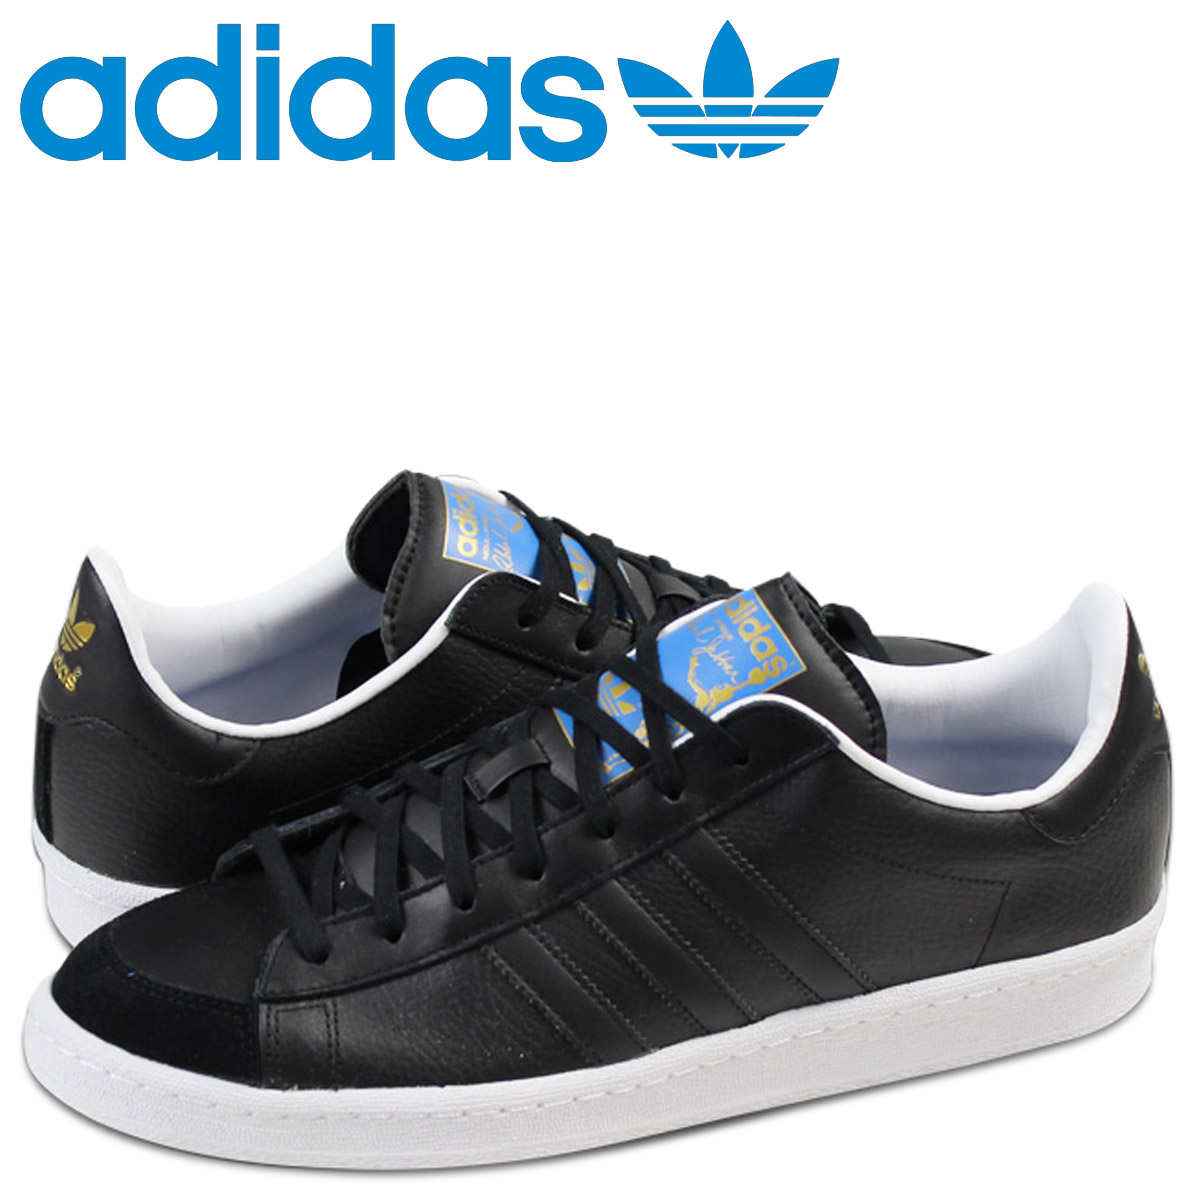 Abdul Men's Kareem G99849 Originals Adidas Leather Sneakers Blackregular Low Jabbar Lo EHIbeY29WD